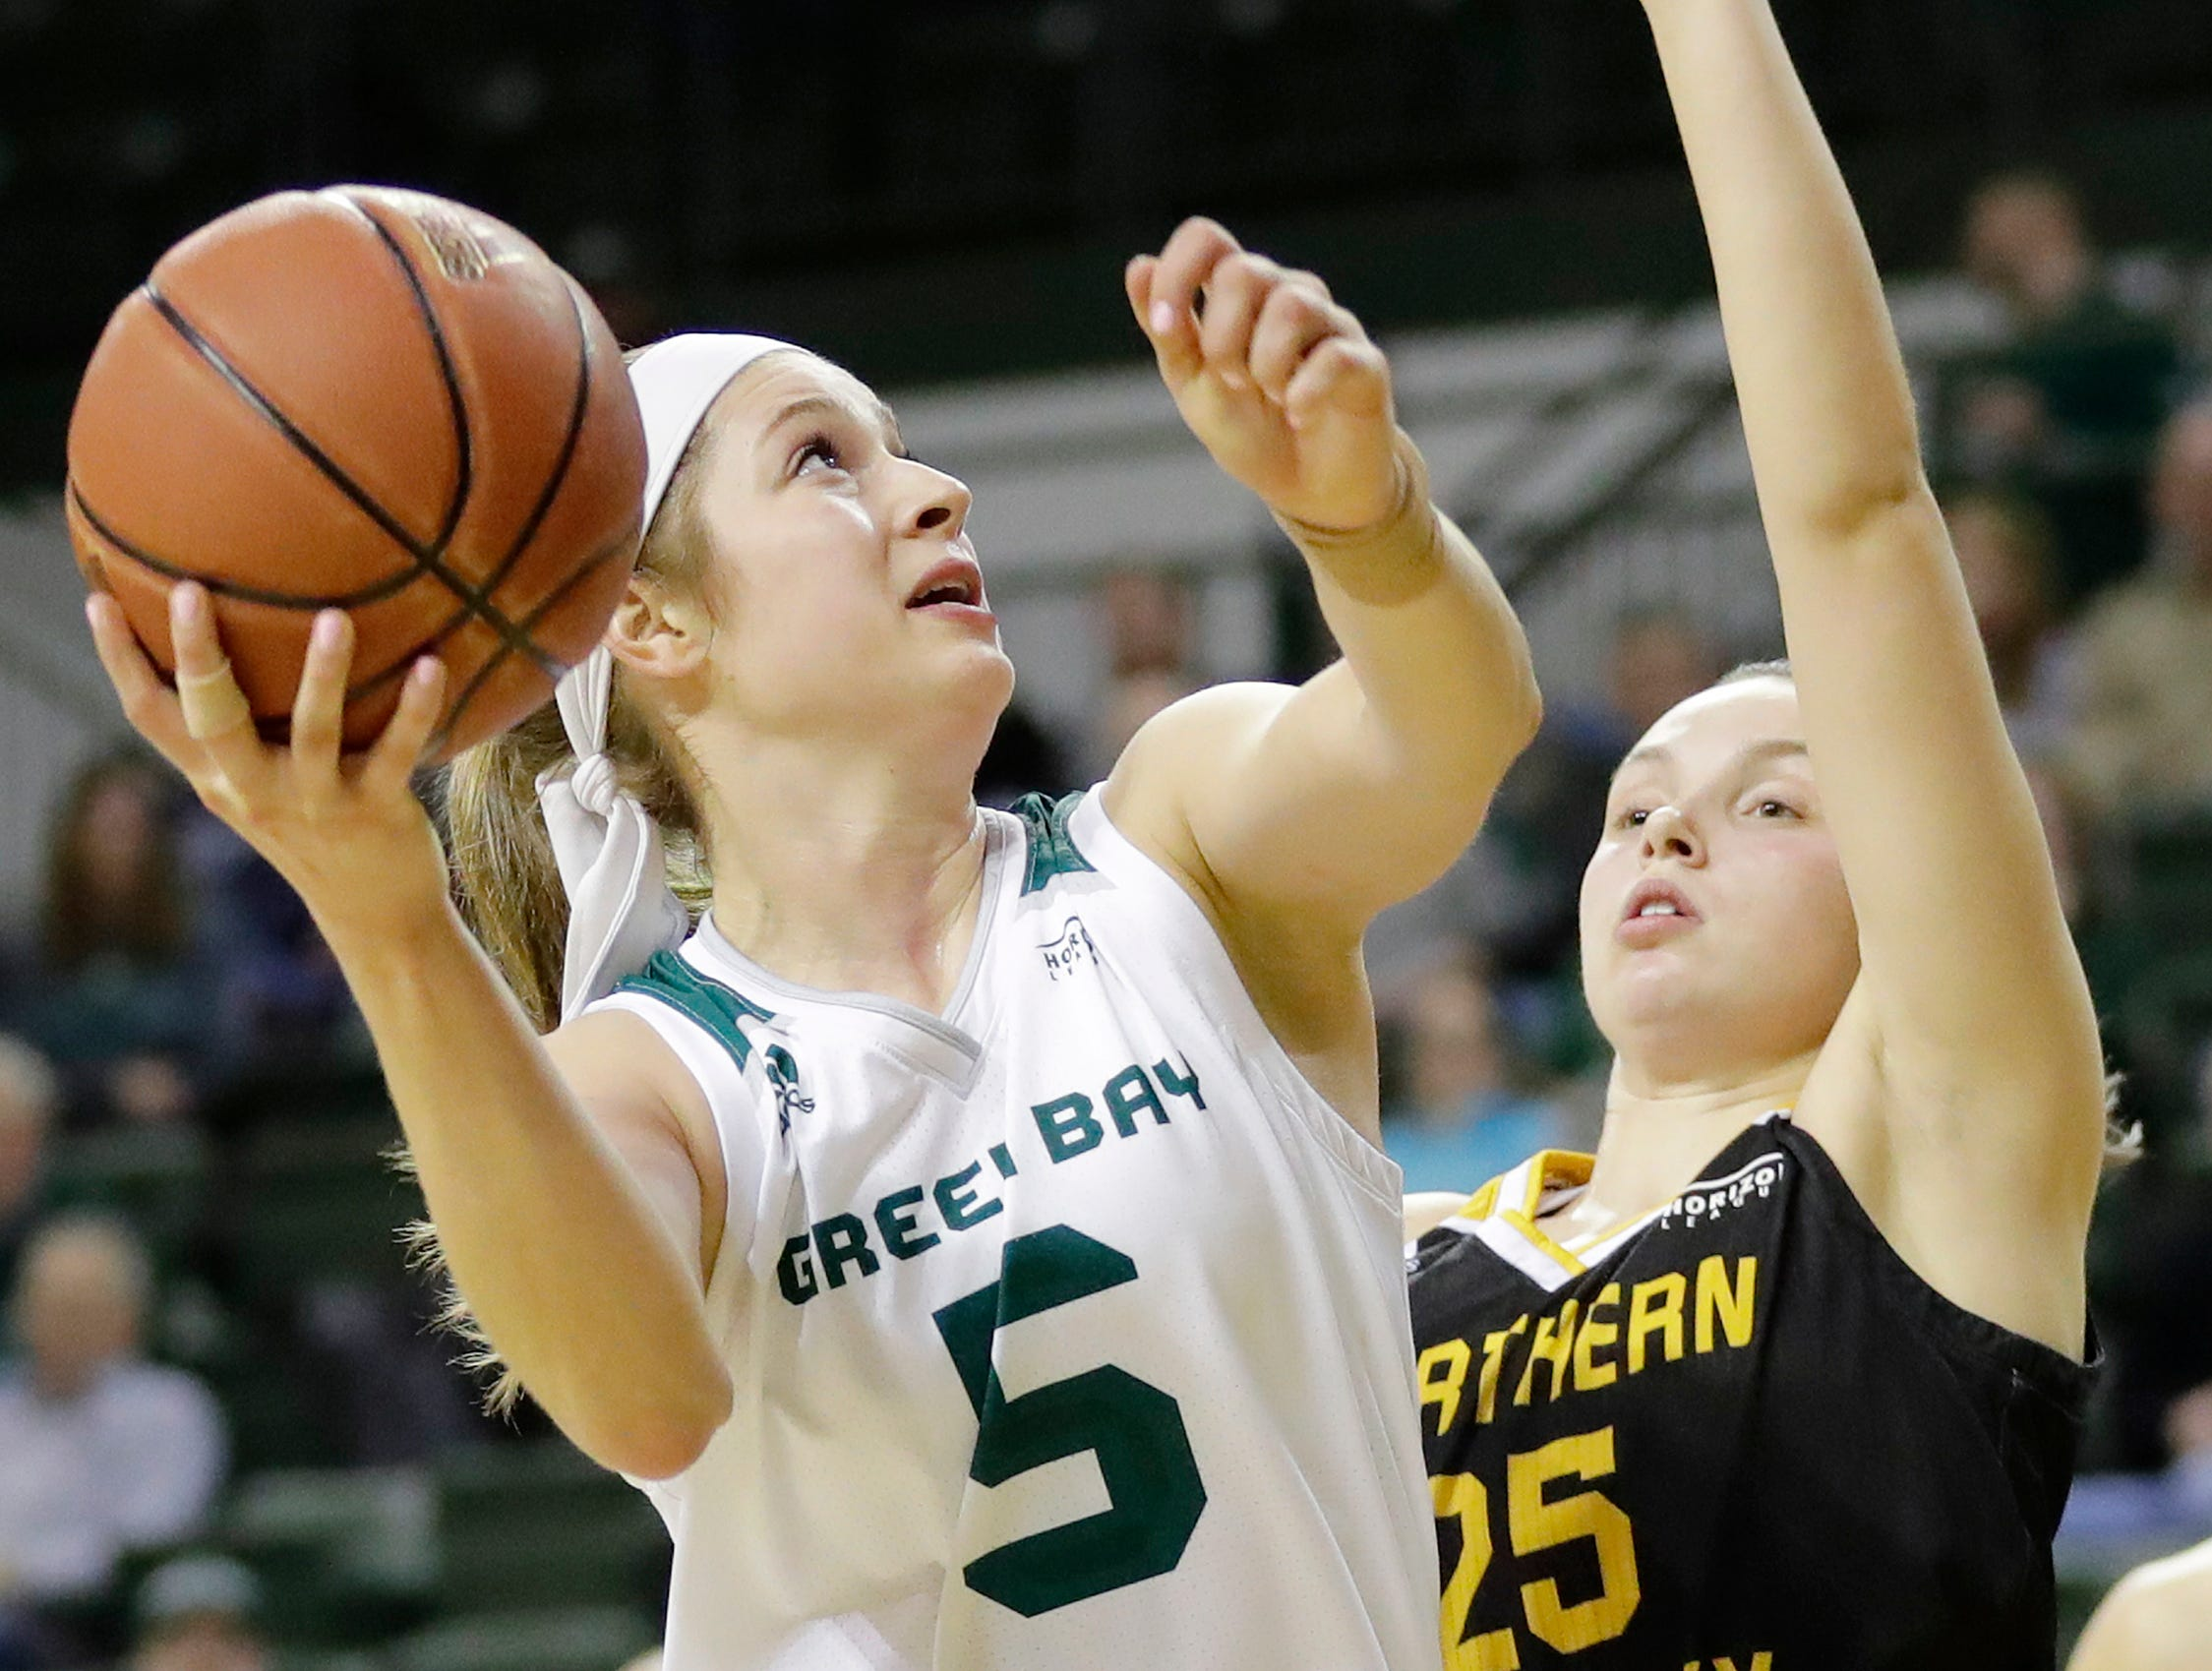 Green Bay Phoenix guard Laken James (5) shoots past Northern Kentucky Norse guard Ally Niece (25) in a Horizon League women's basketball game at the Kress Center on Thursday, February 7, 2019 in Green Bay, Wis.